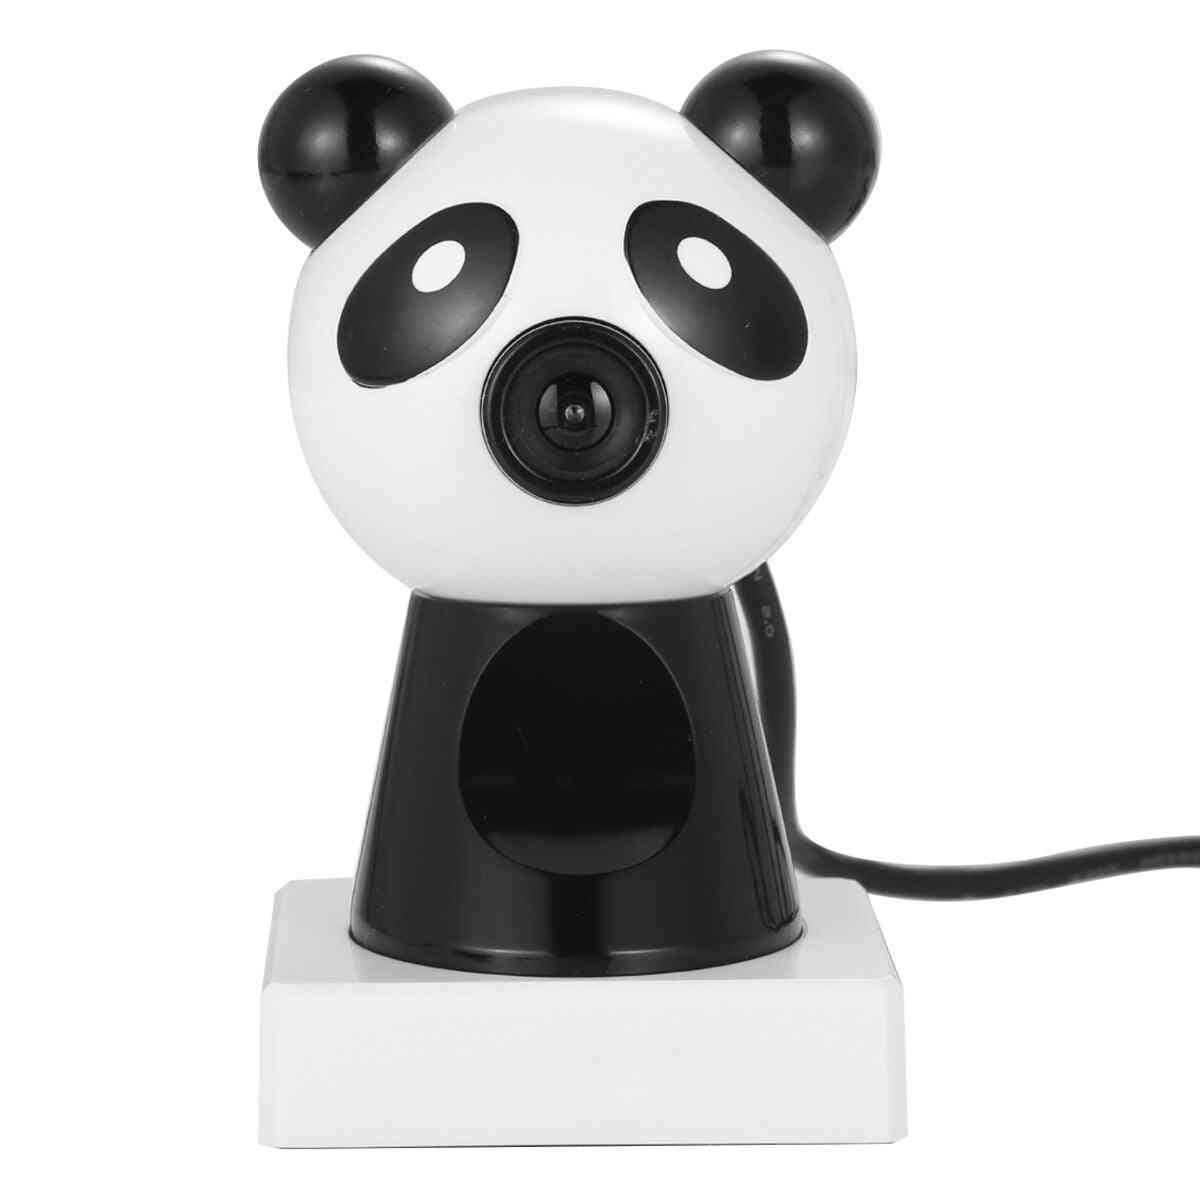 Hd 480p, Usb Video Recording- Web Camera With Speaker For Computer